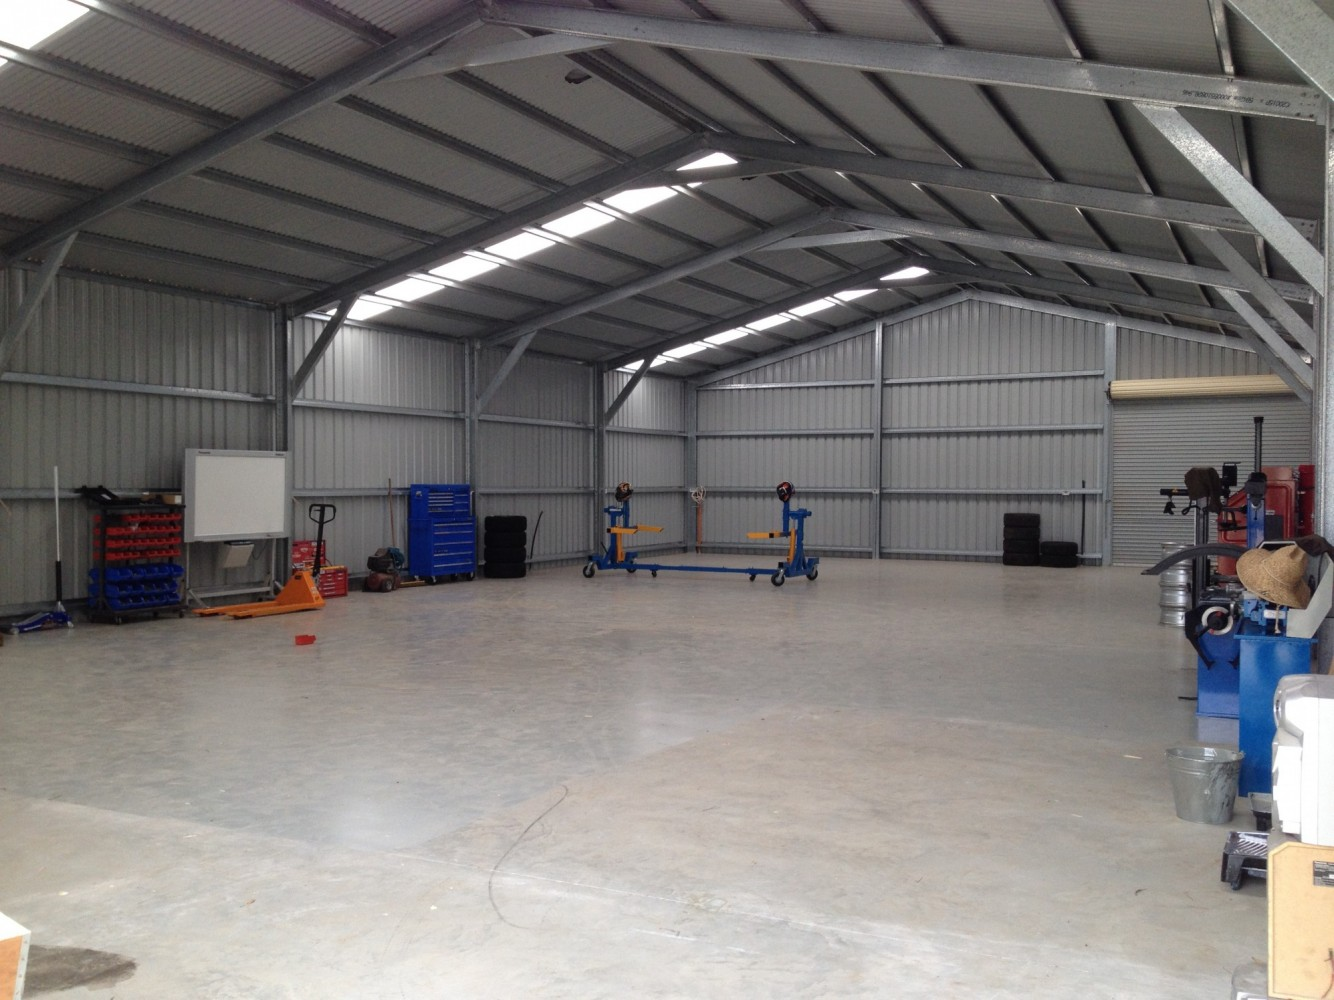 Peter's New Mechanical Workshop